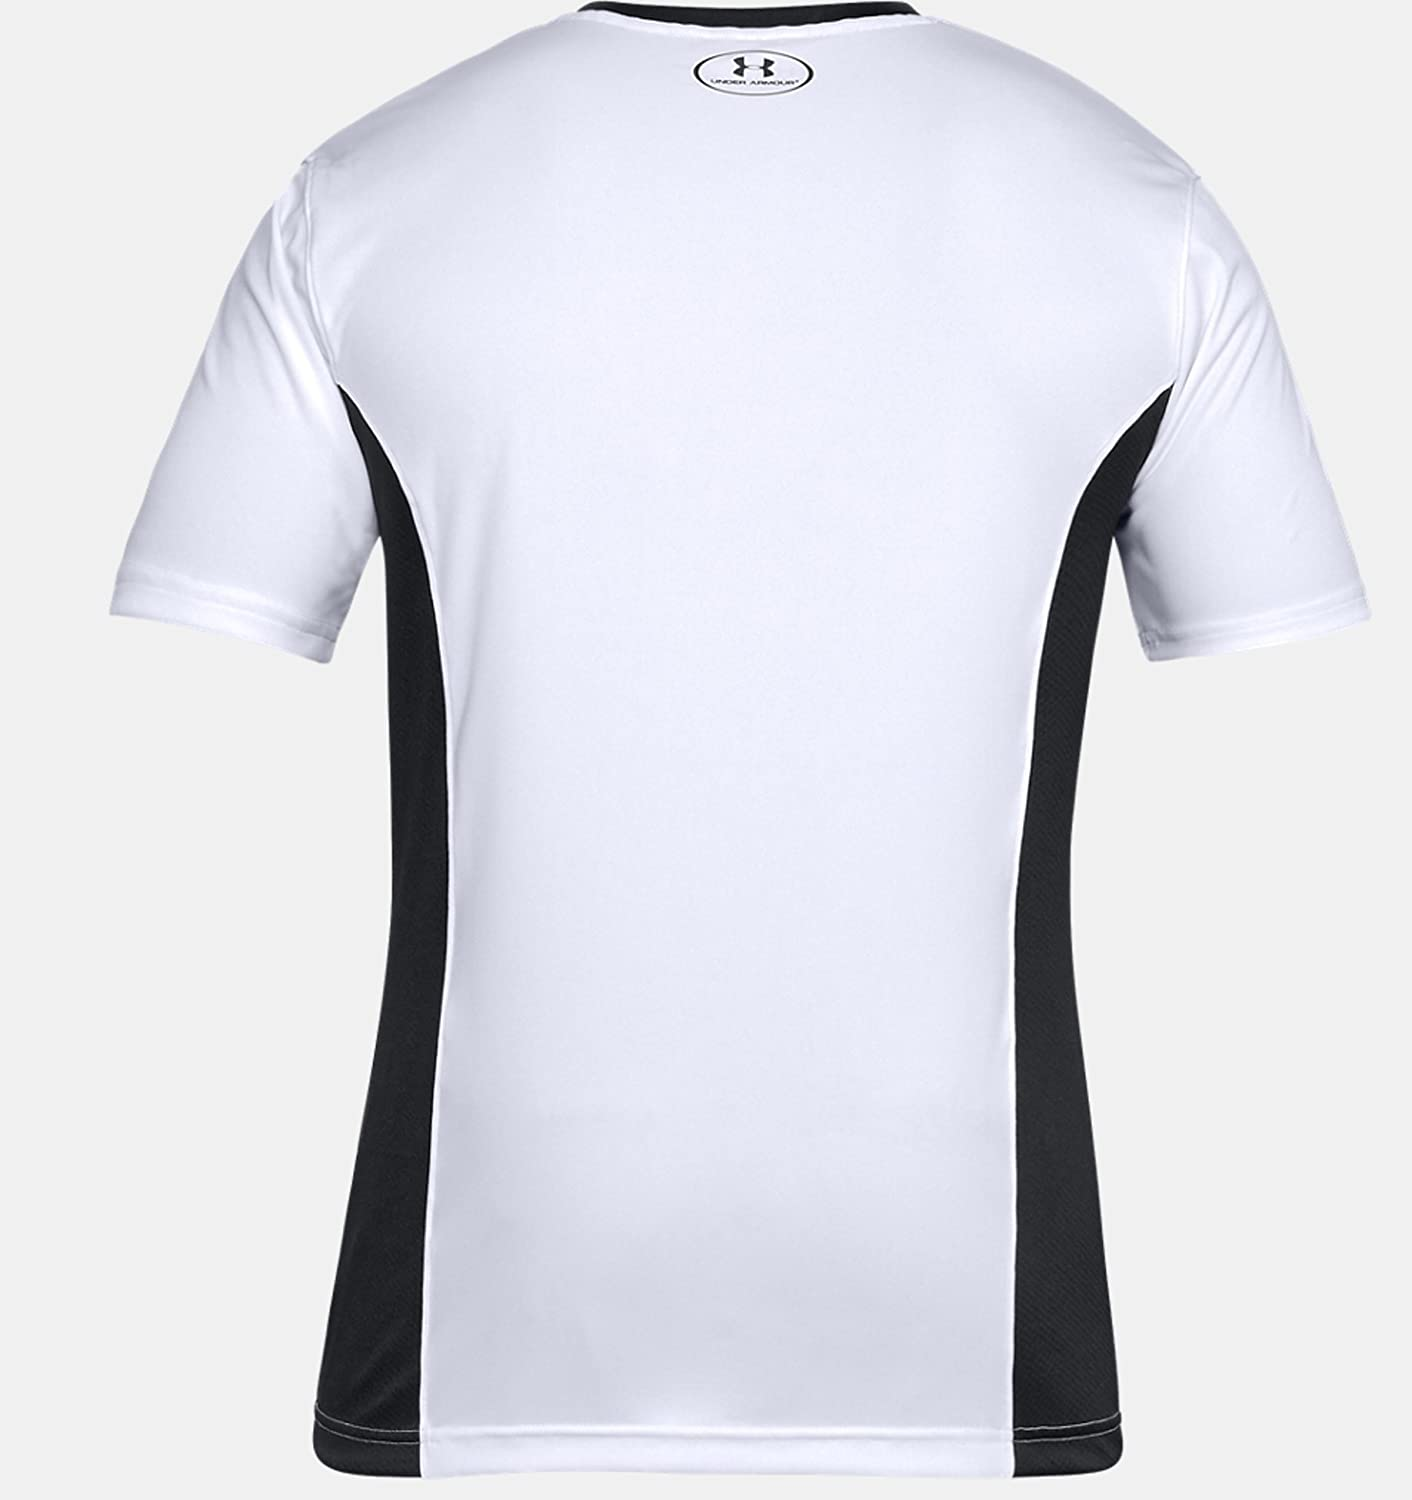 ecf937890 Under Armour Challenger Ii Training Top Men's Short-Sleeve Shirt:  Amazon.co.uk: Sports & Outdoors